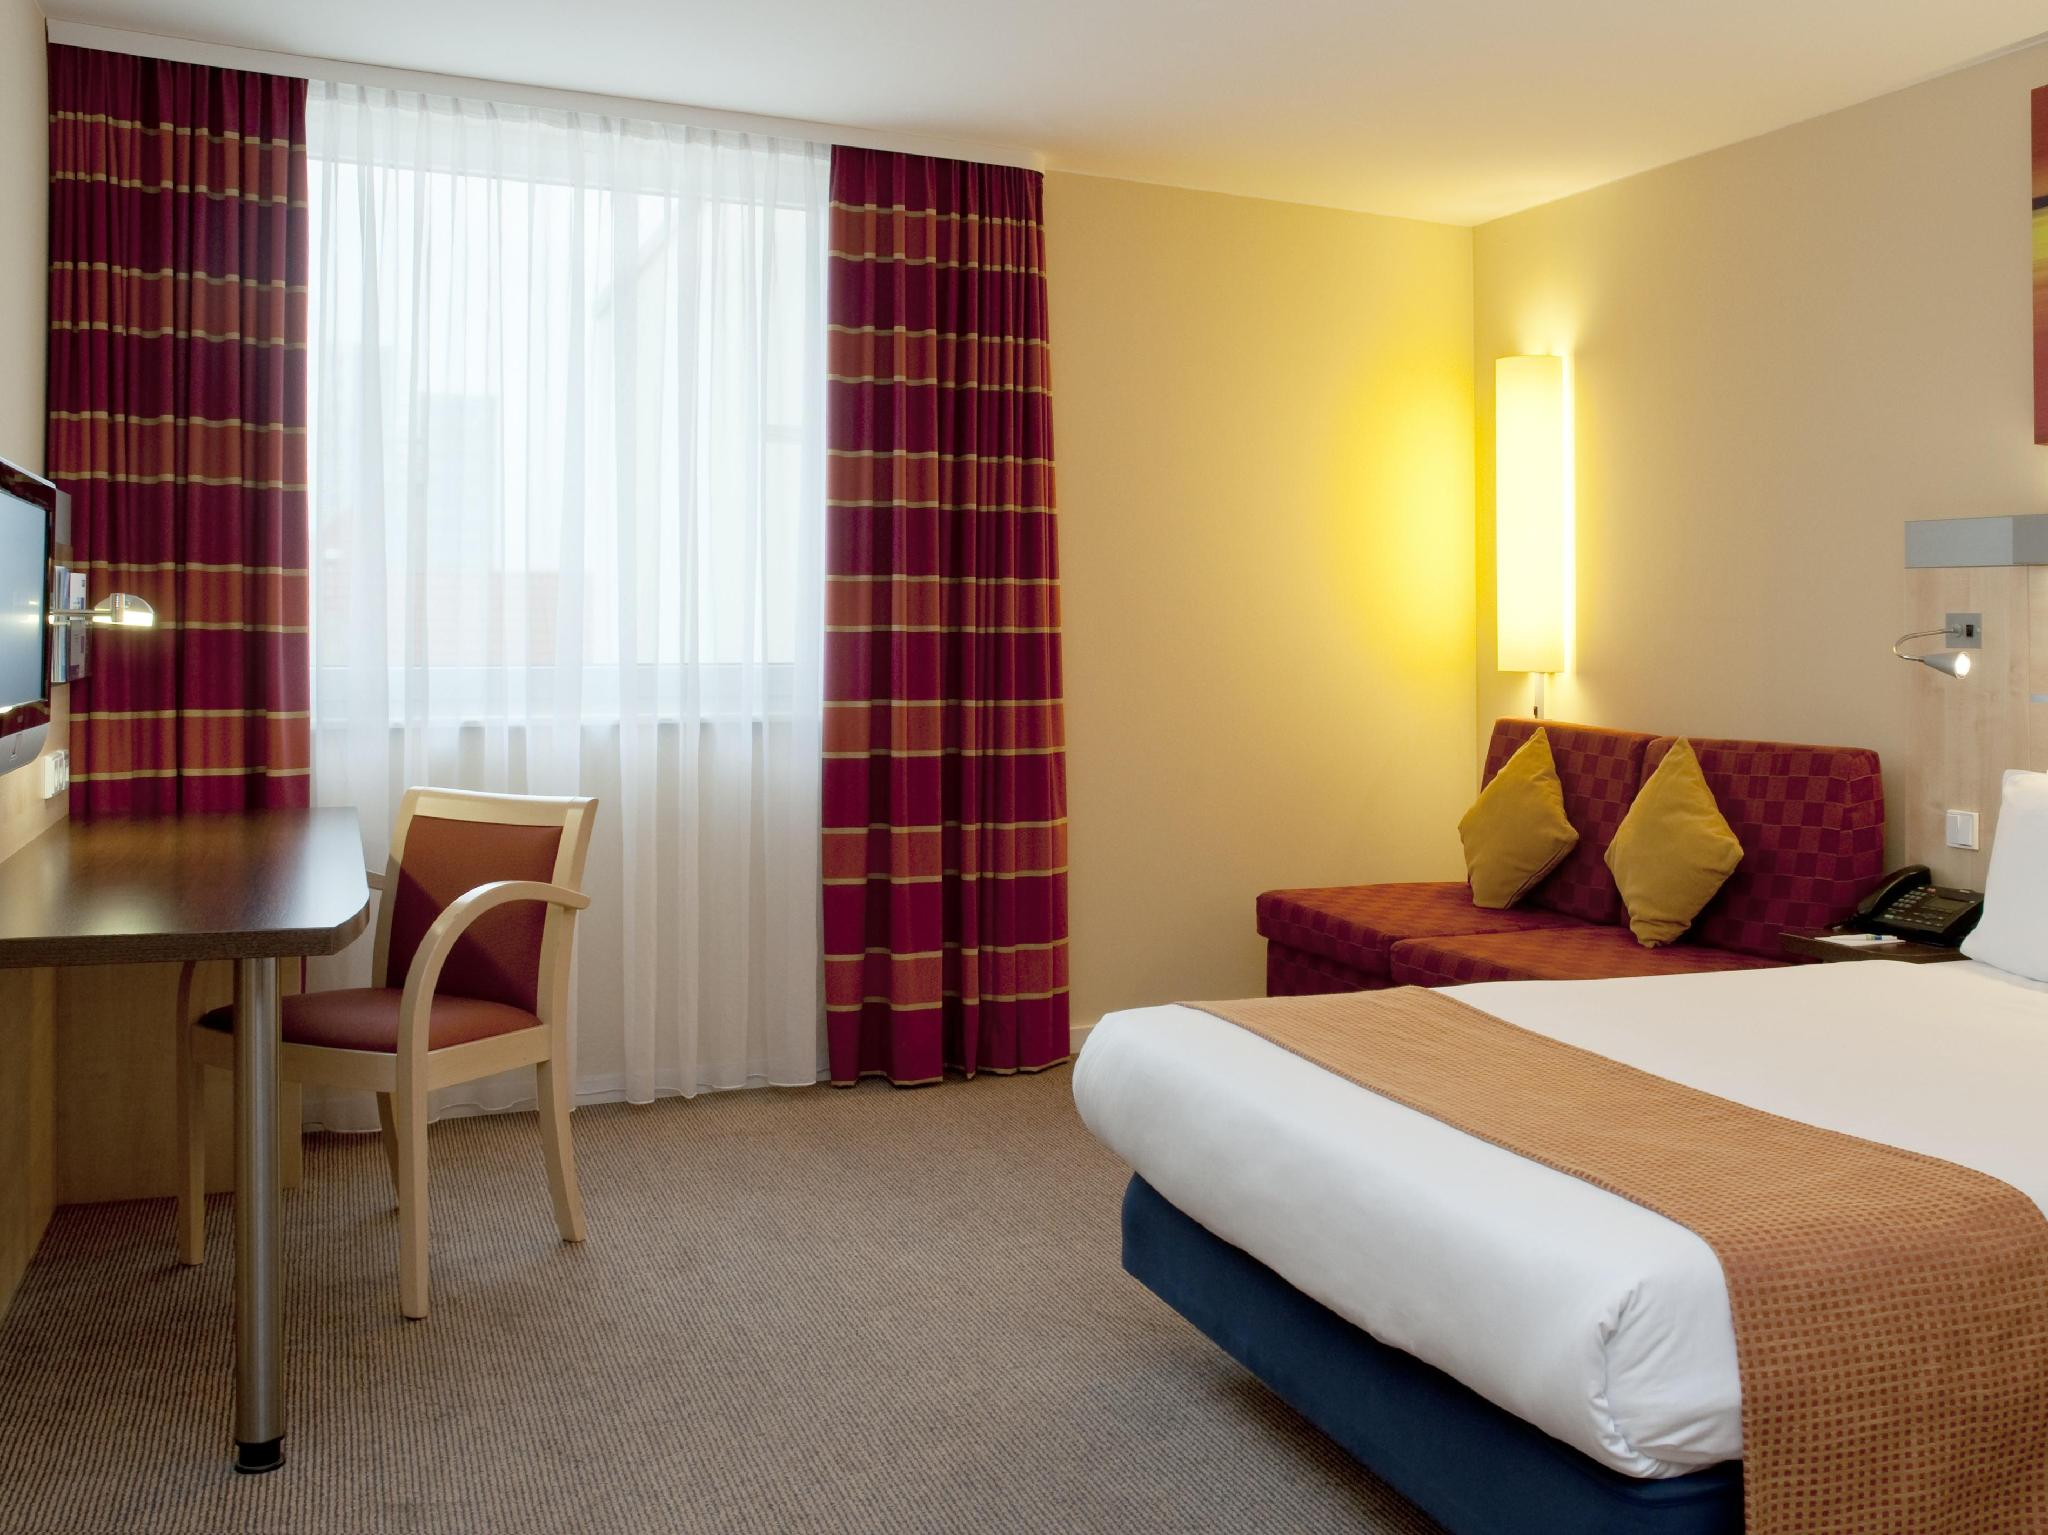 Holiday Inn Express Berlin City Centre West ברלין - בית המלון מבחוץ